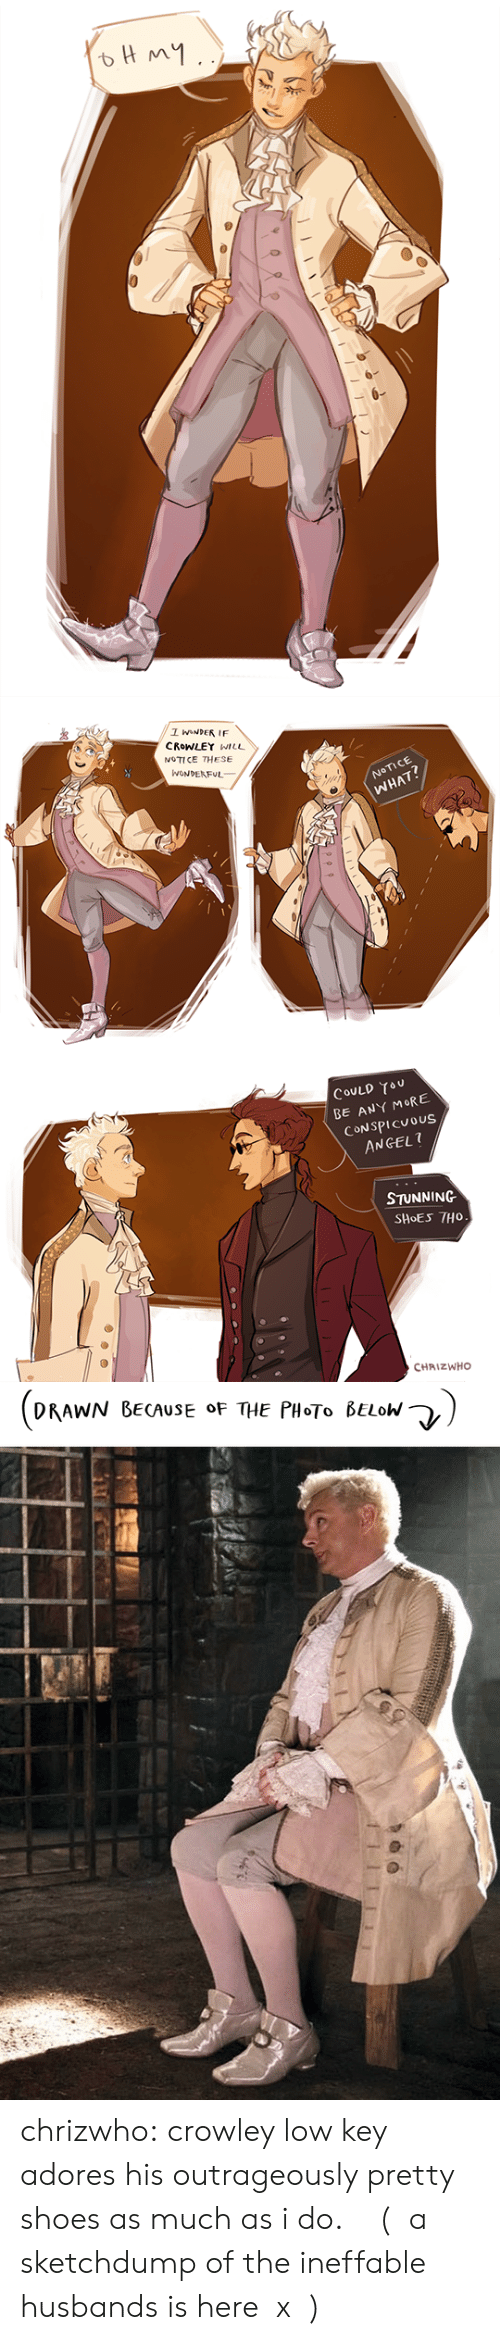 Low key: ВНмy.   IwNDER IF  CROWLEY WILL  NOTICE THESE  WONDENFUL  NOTICE  WHAT?   COULD TOU  BE ANY MORE  CONSPICUOUS  ANGEL  STUNNING  SHOES 7HO  CHRIZWHO   DRAWN BECAUSE OF THE PH0T0 BELOW- chrizwho: crowley low key adores his outrageously pretty shoes as much as i do.  ( a sketchdump of the ineffable husbands is herex)